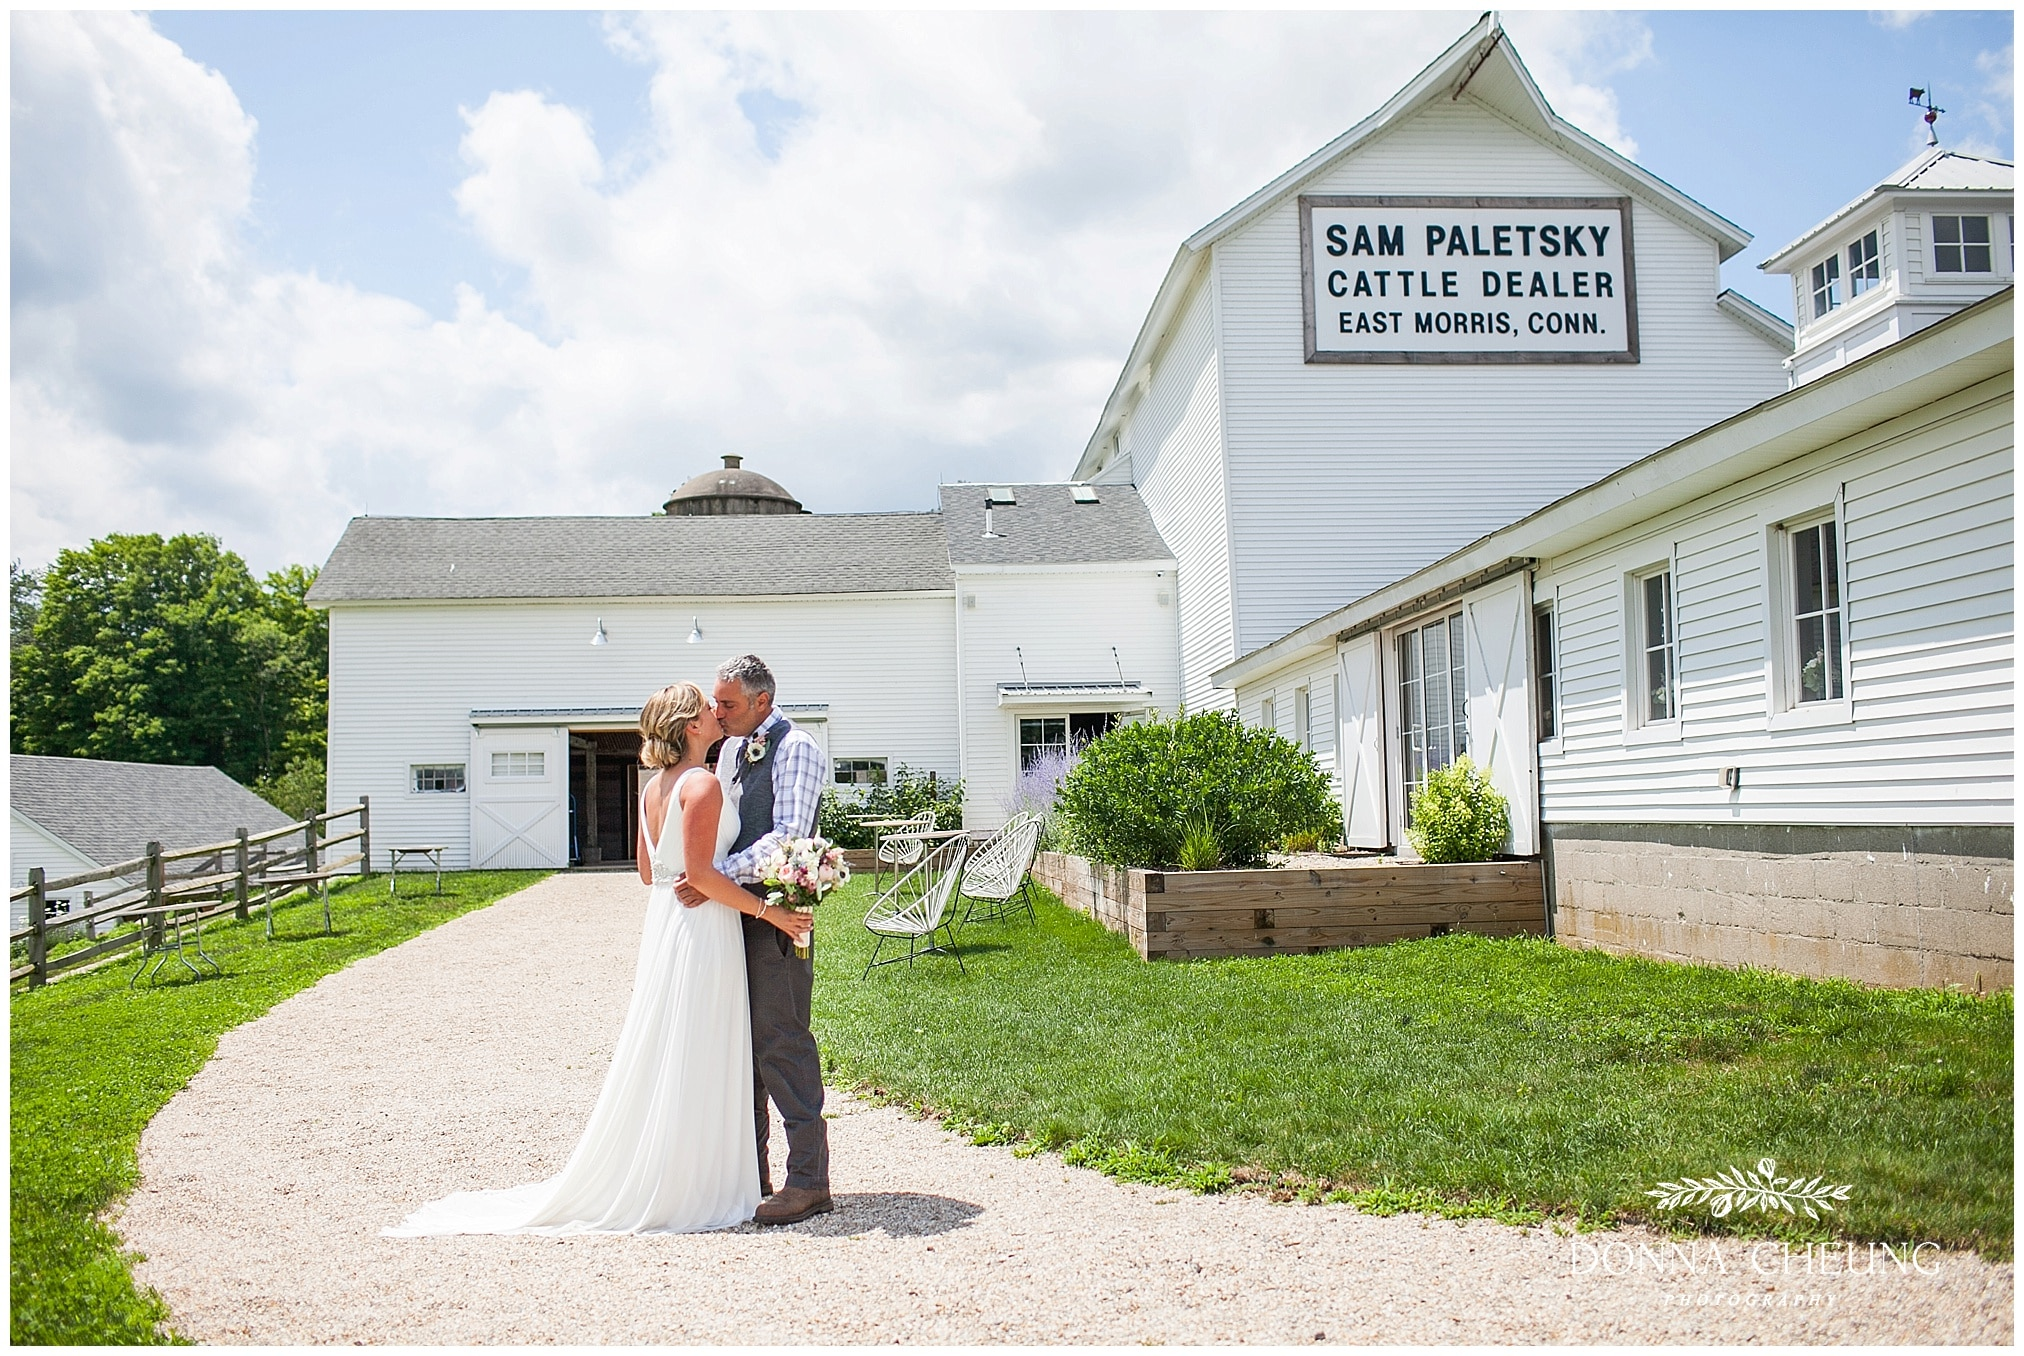 Please Enjoy Some Of My Favorite Images From Sam Irv S Beautiful Wedding Day At The White Barn South Farms In Morris Ct To See More Their